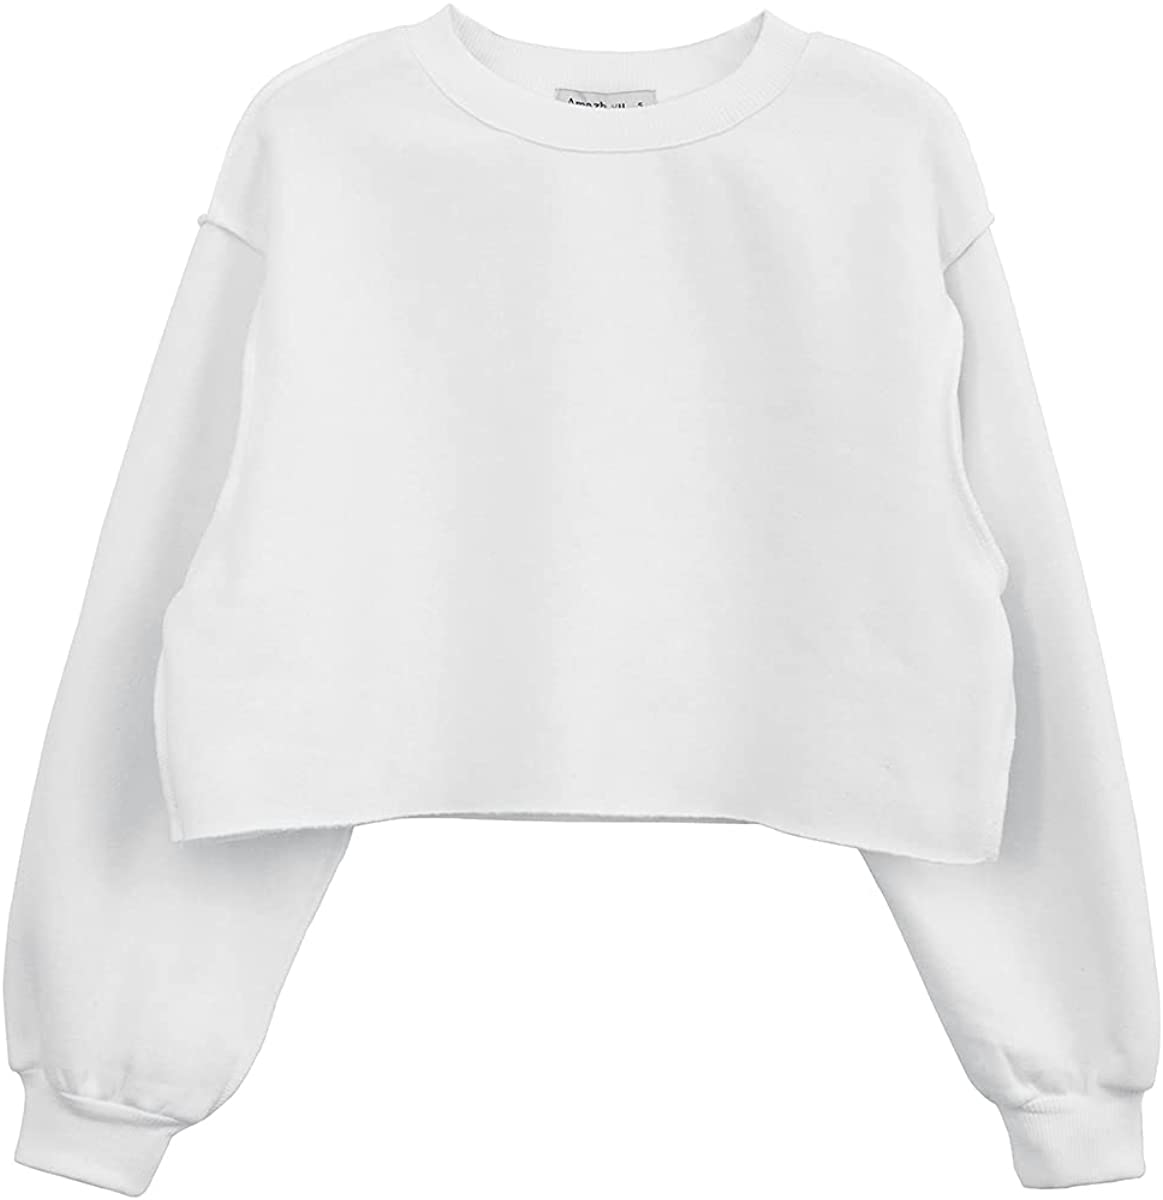 Women Pullover Cropped Hoodies Long Sleeves Sweatshirts Casual Crop Tops for Spring Autumn Winter